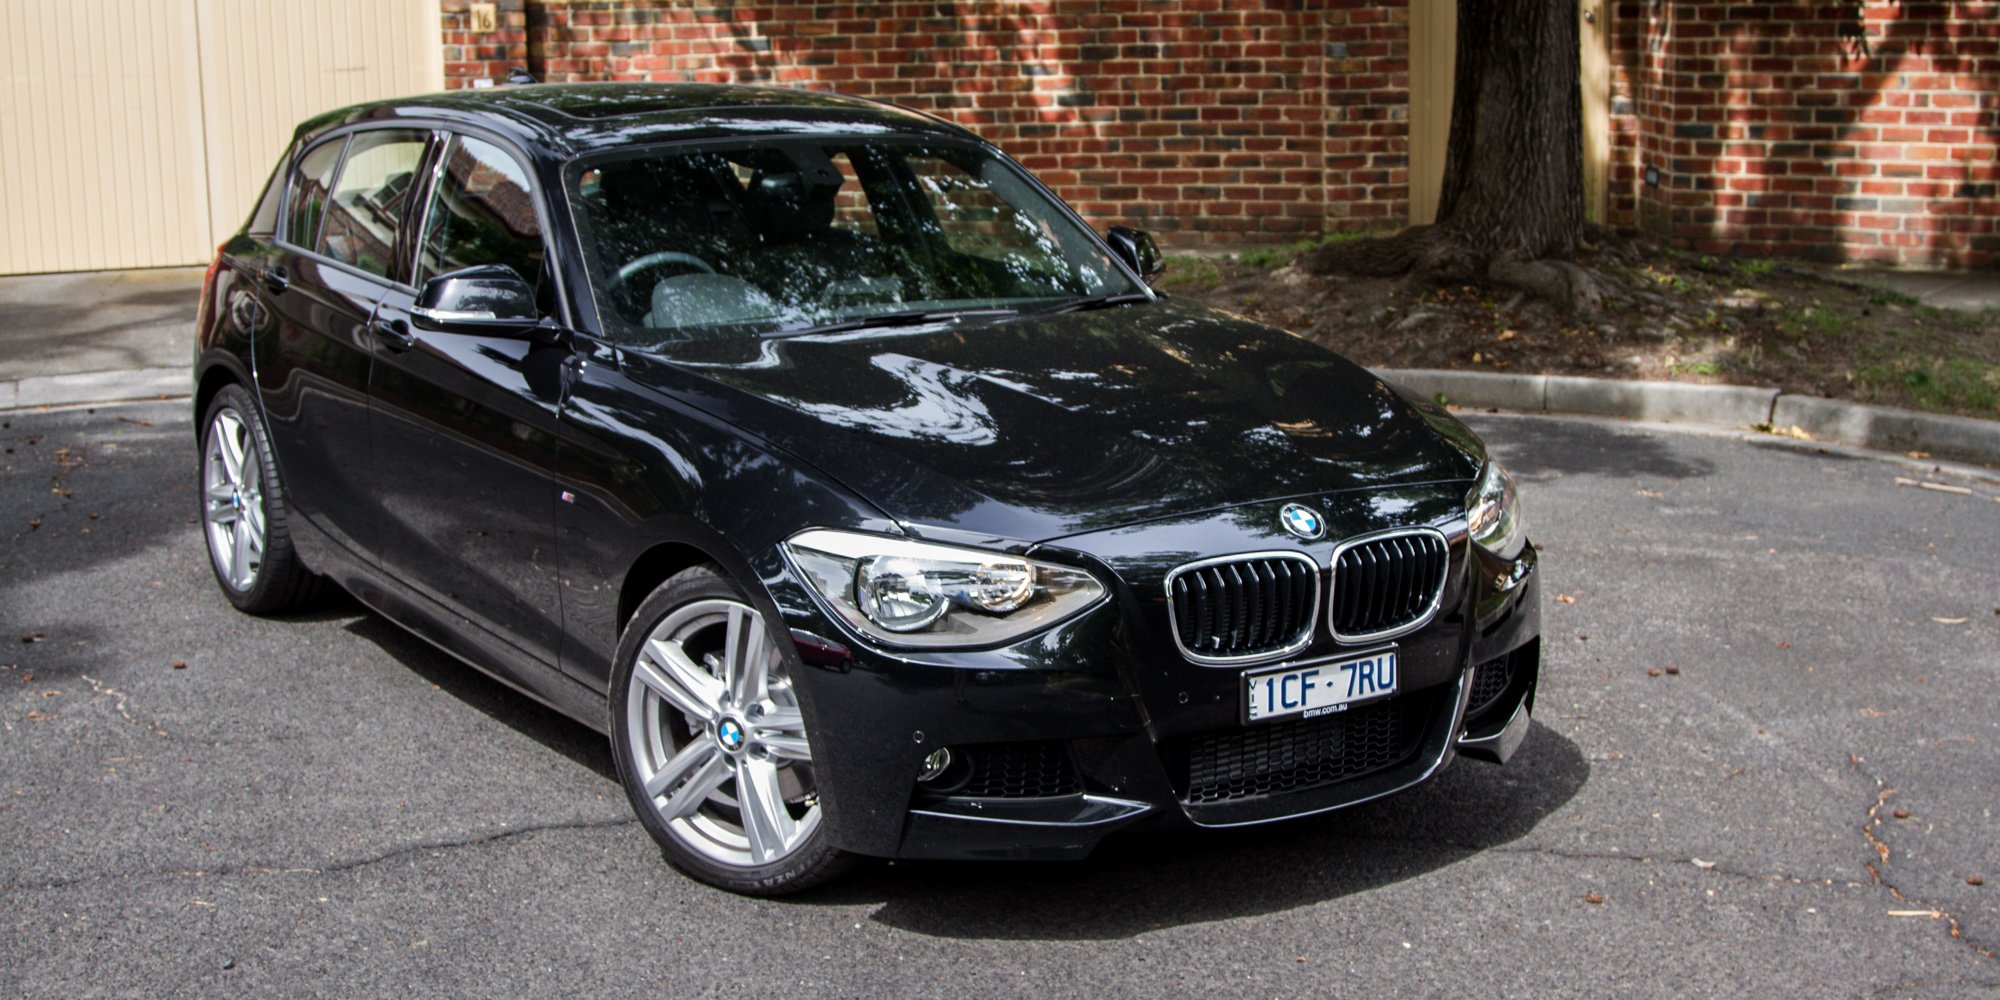 2014 Bmw 118i Review Photos Caradvice